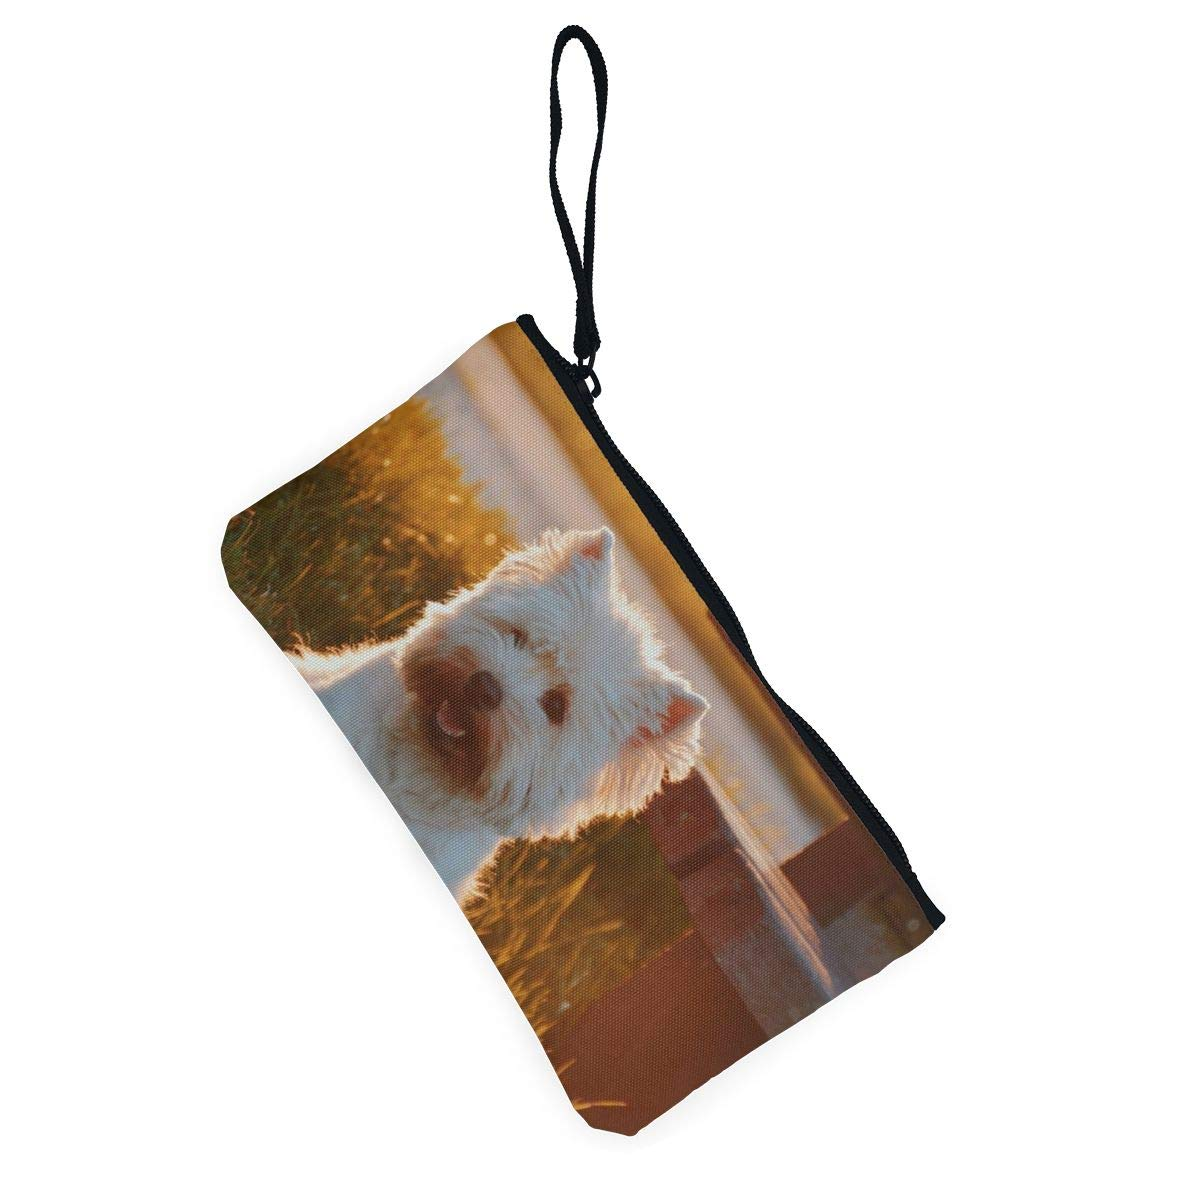 Yamini Dog Sitting On Grass Field Beside Bench at Golden Hour Cute Looking Coin Purse Small and Exquisite Going Out to Carry Purse